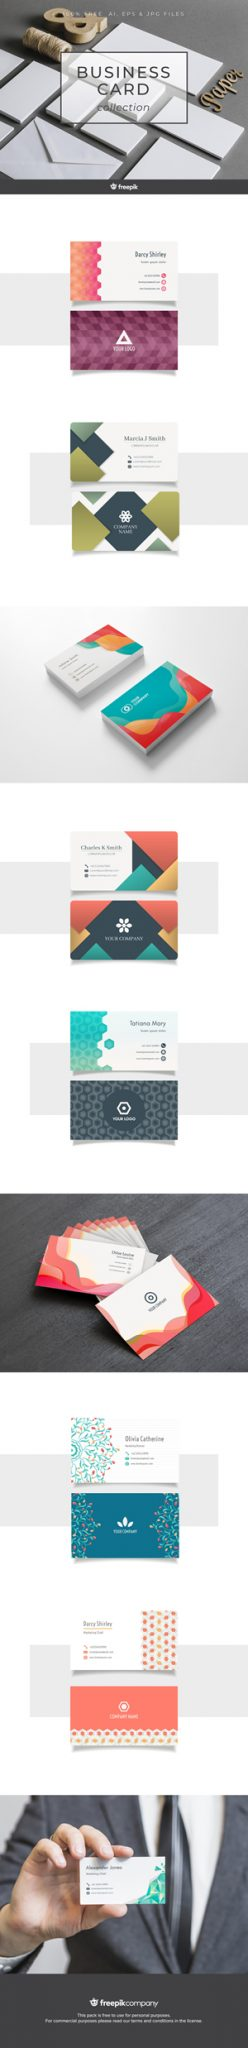 BUSINESS_CARD Free Download via Freepik